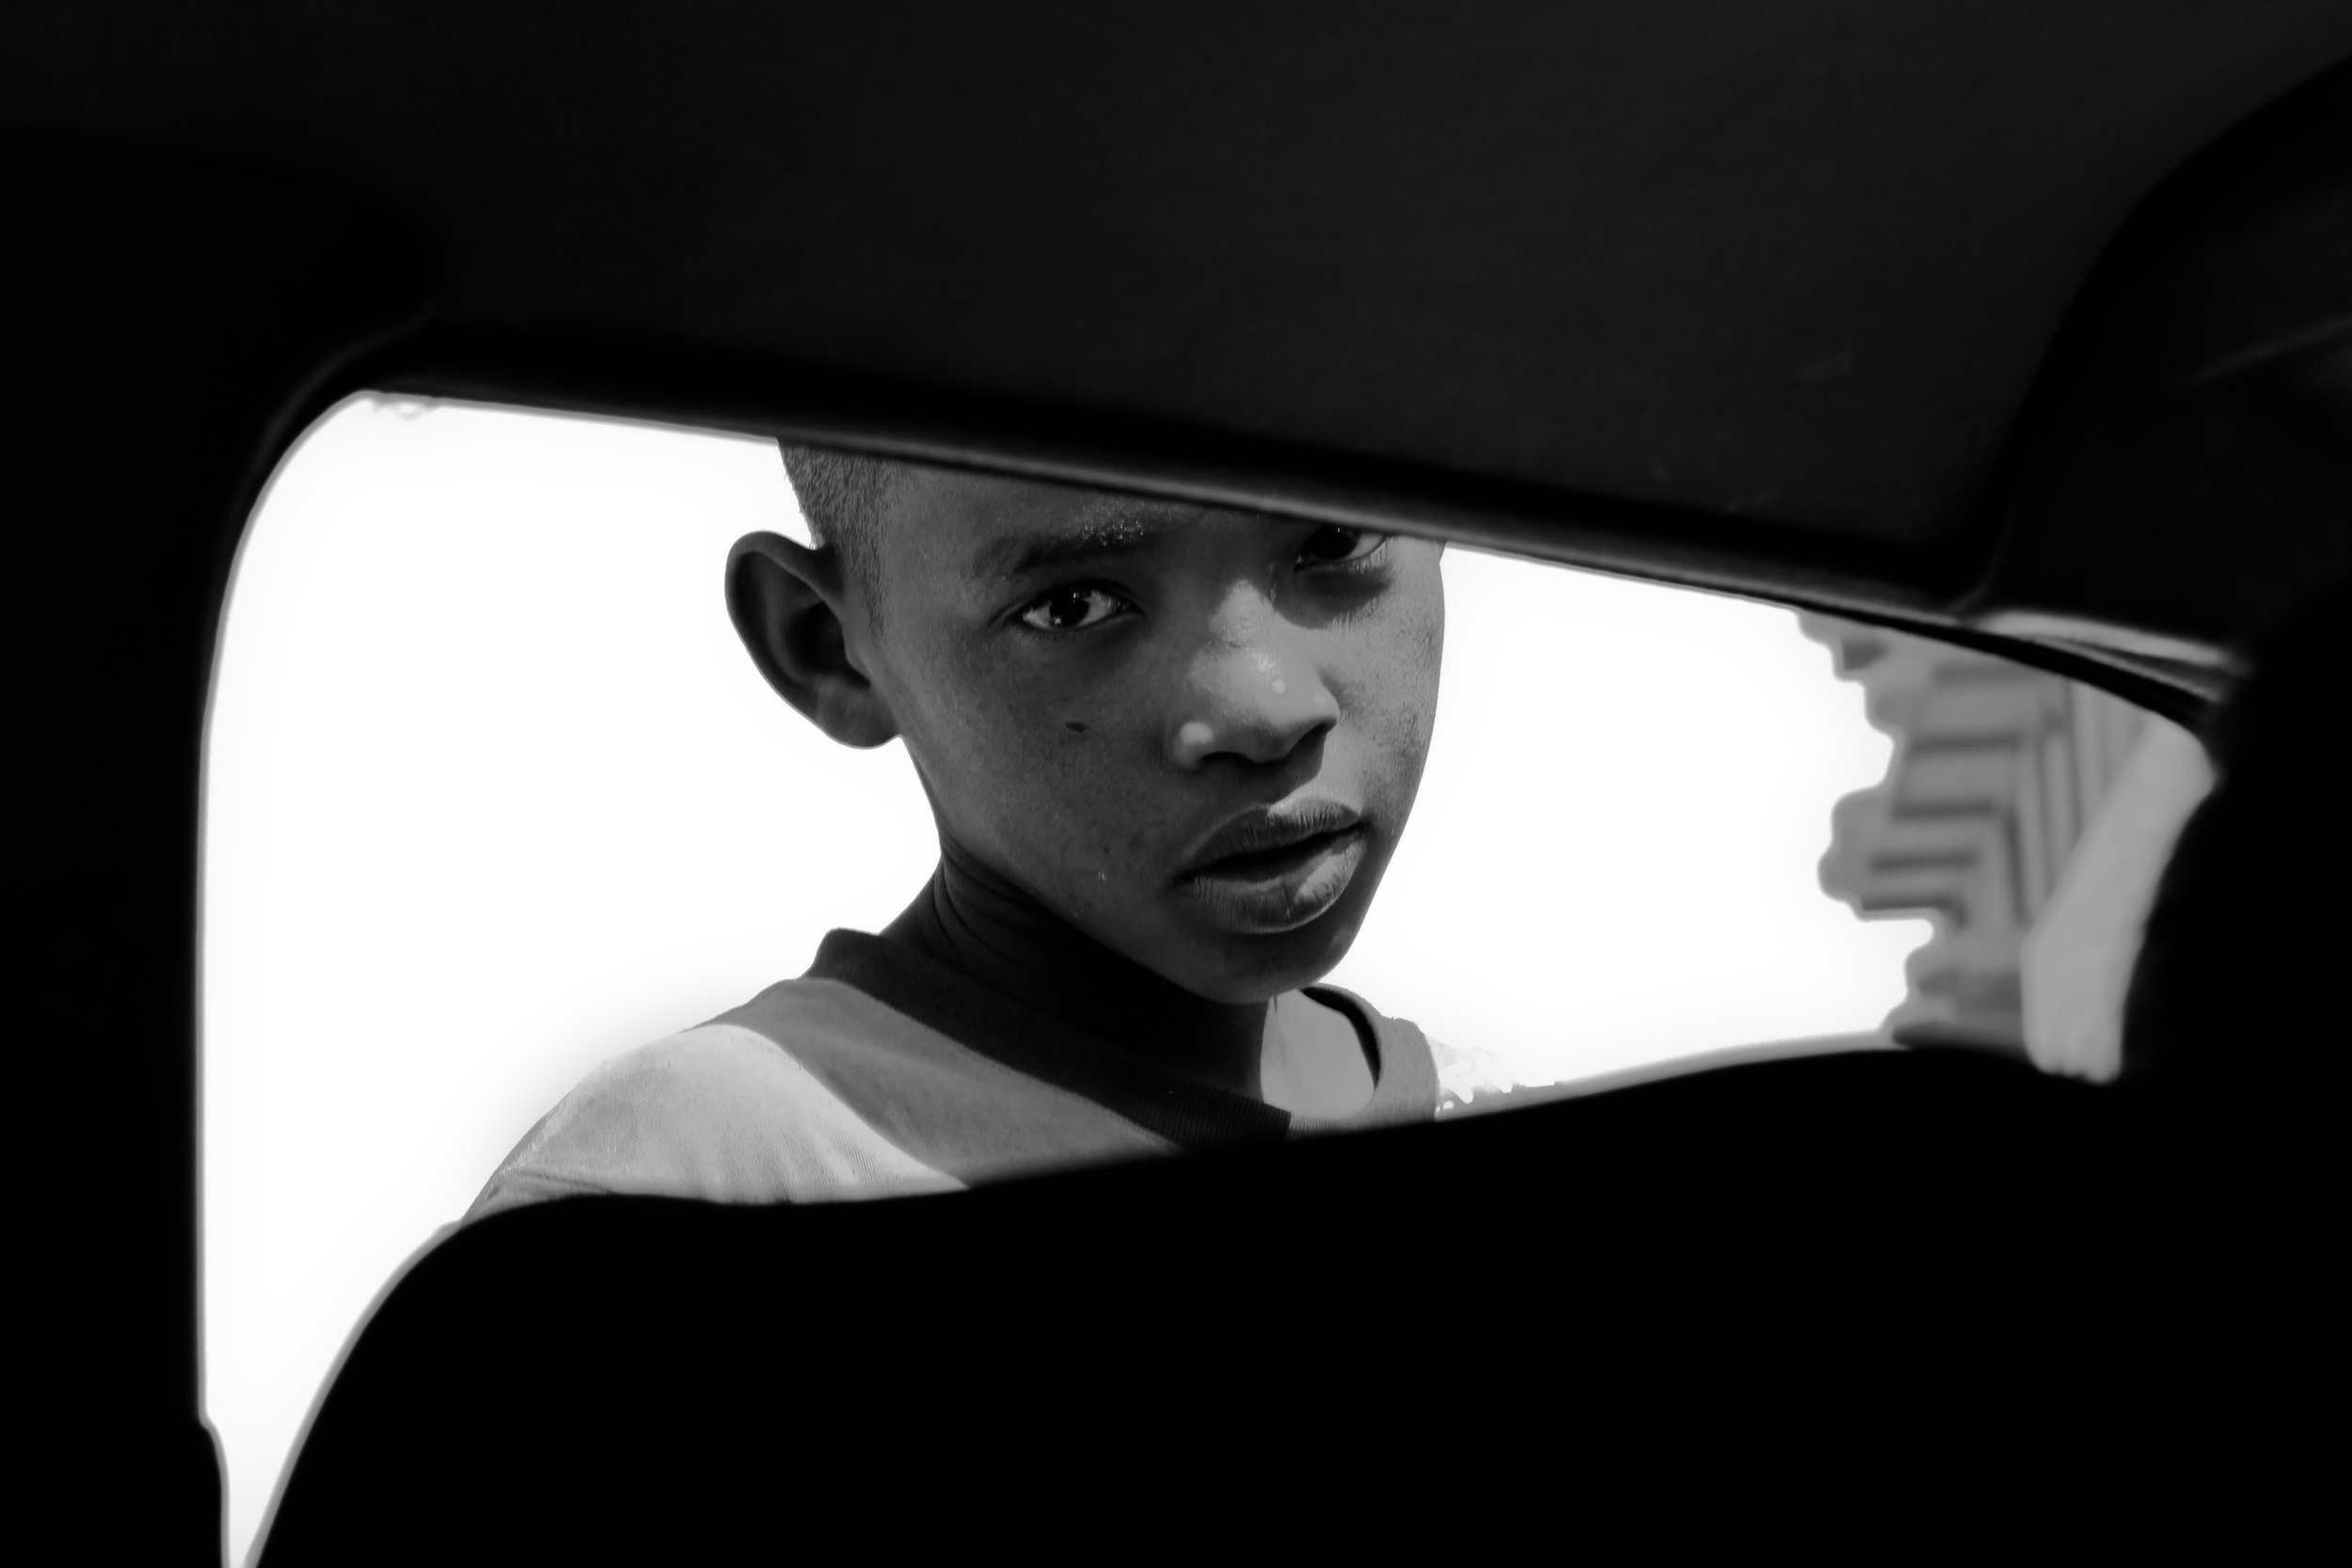 An African portrait using the compositional technique of a frame within a frame.